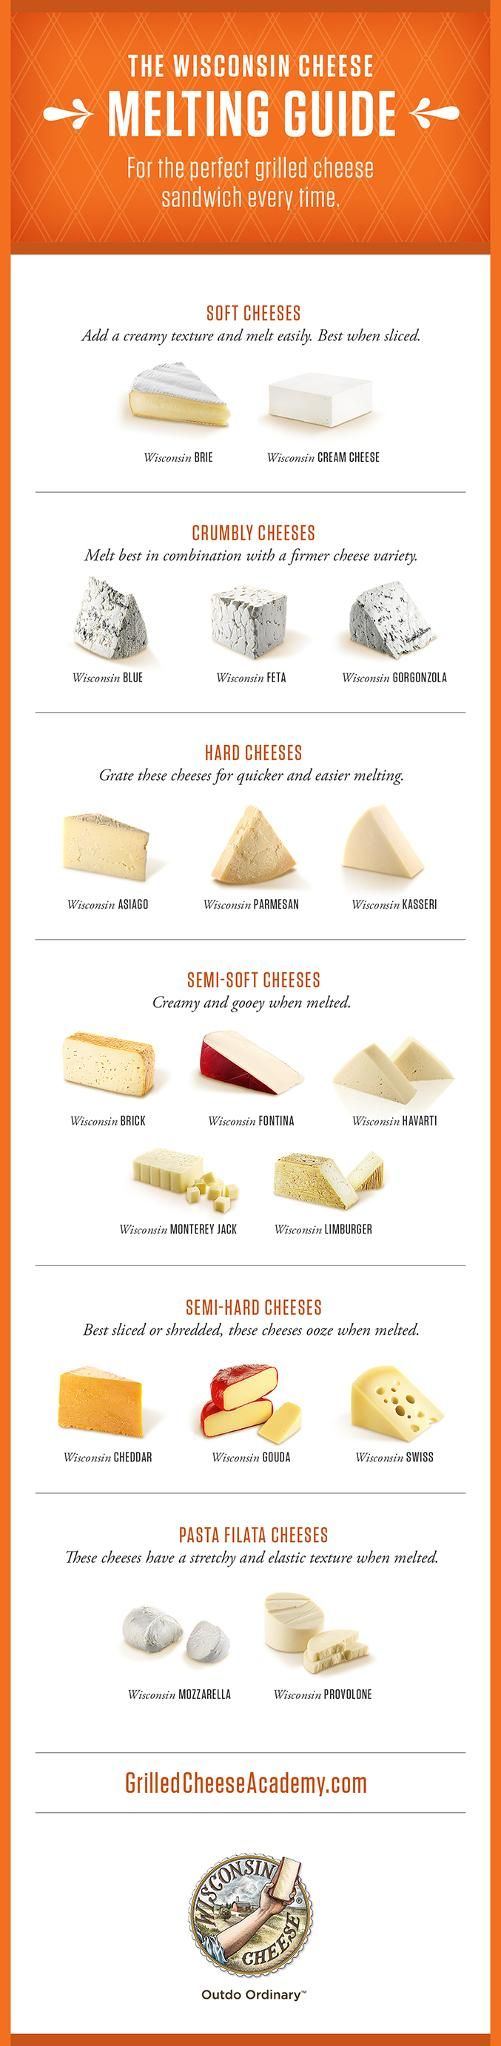 When it comes to making a great grilled cheese, the key is obtaining the perfect melty, texture of the cheese. We've created a Cheese Melting 101 guide to help you get it right.